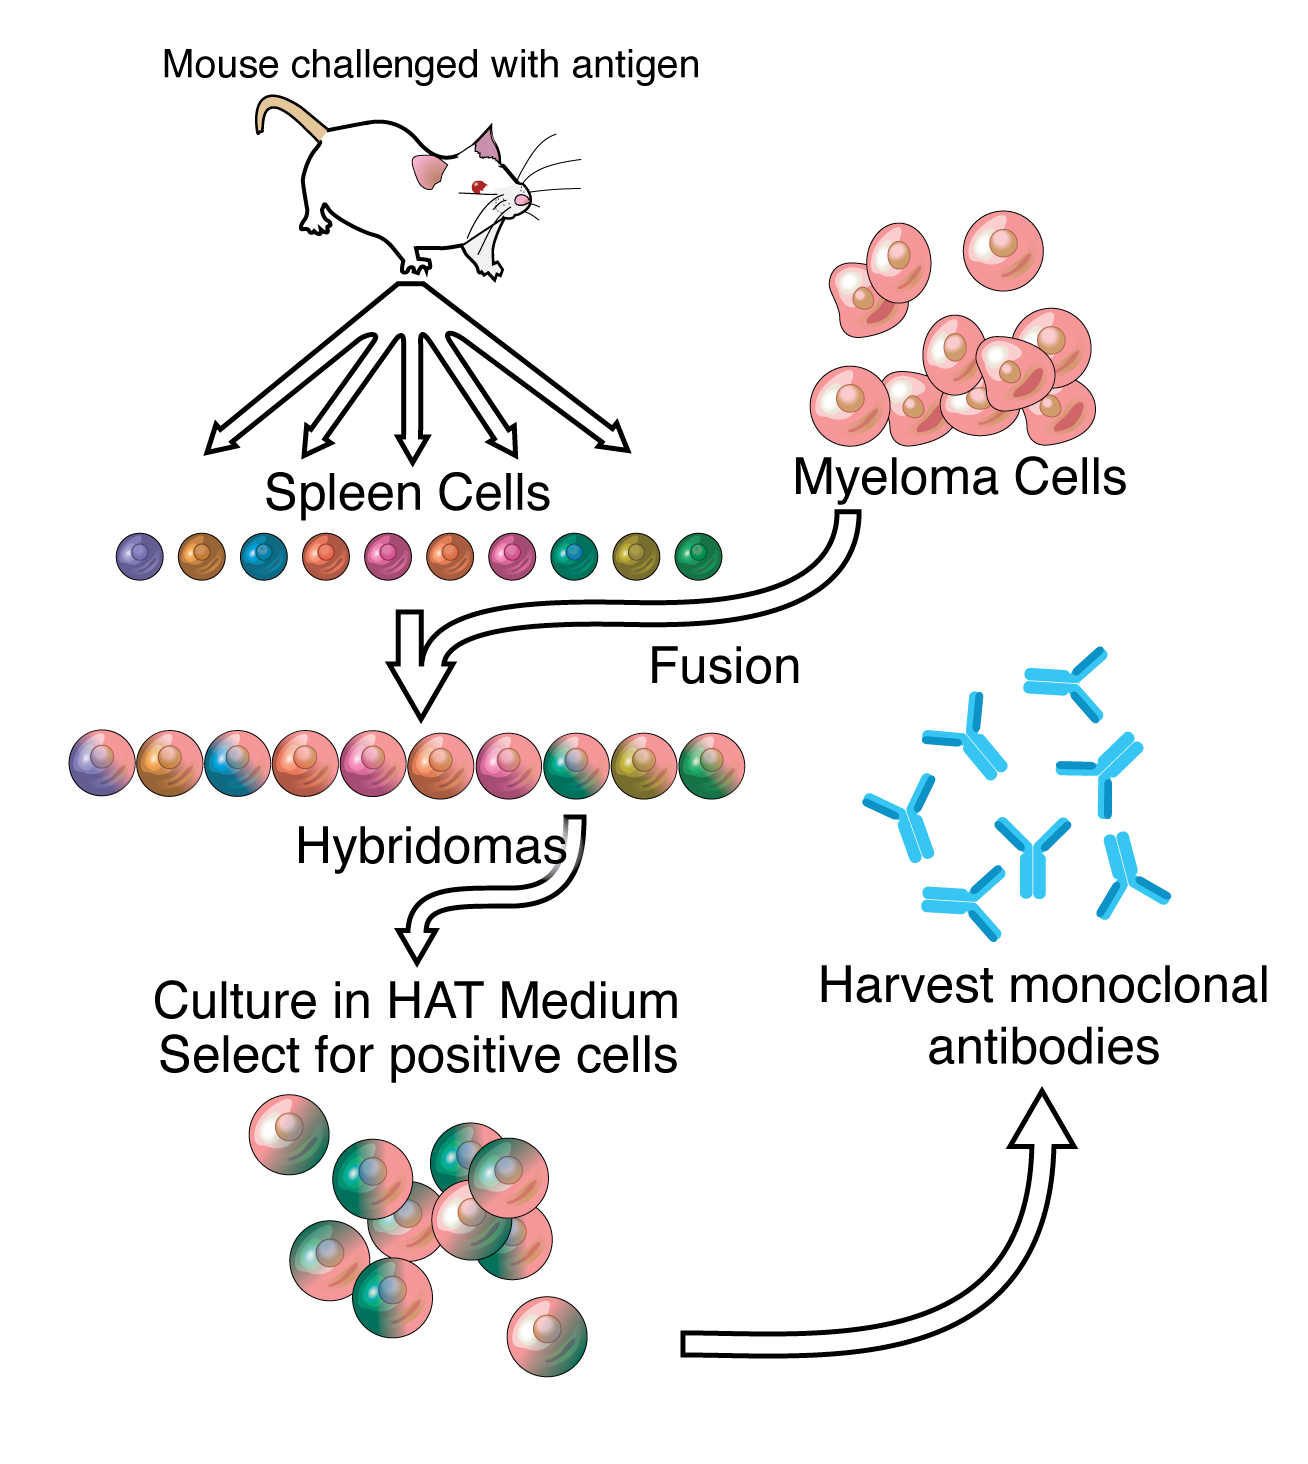 monoclonal antibody production flow